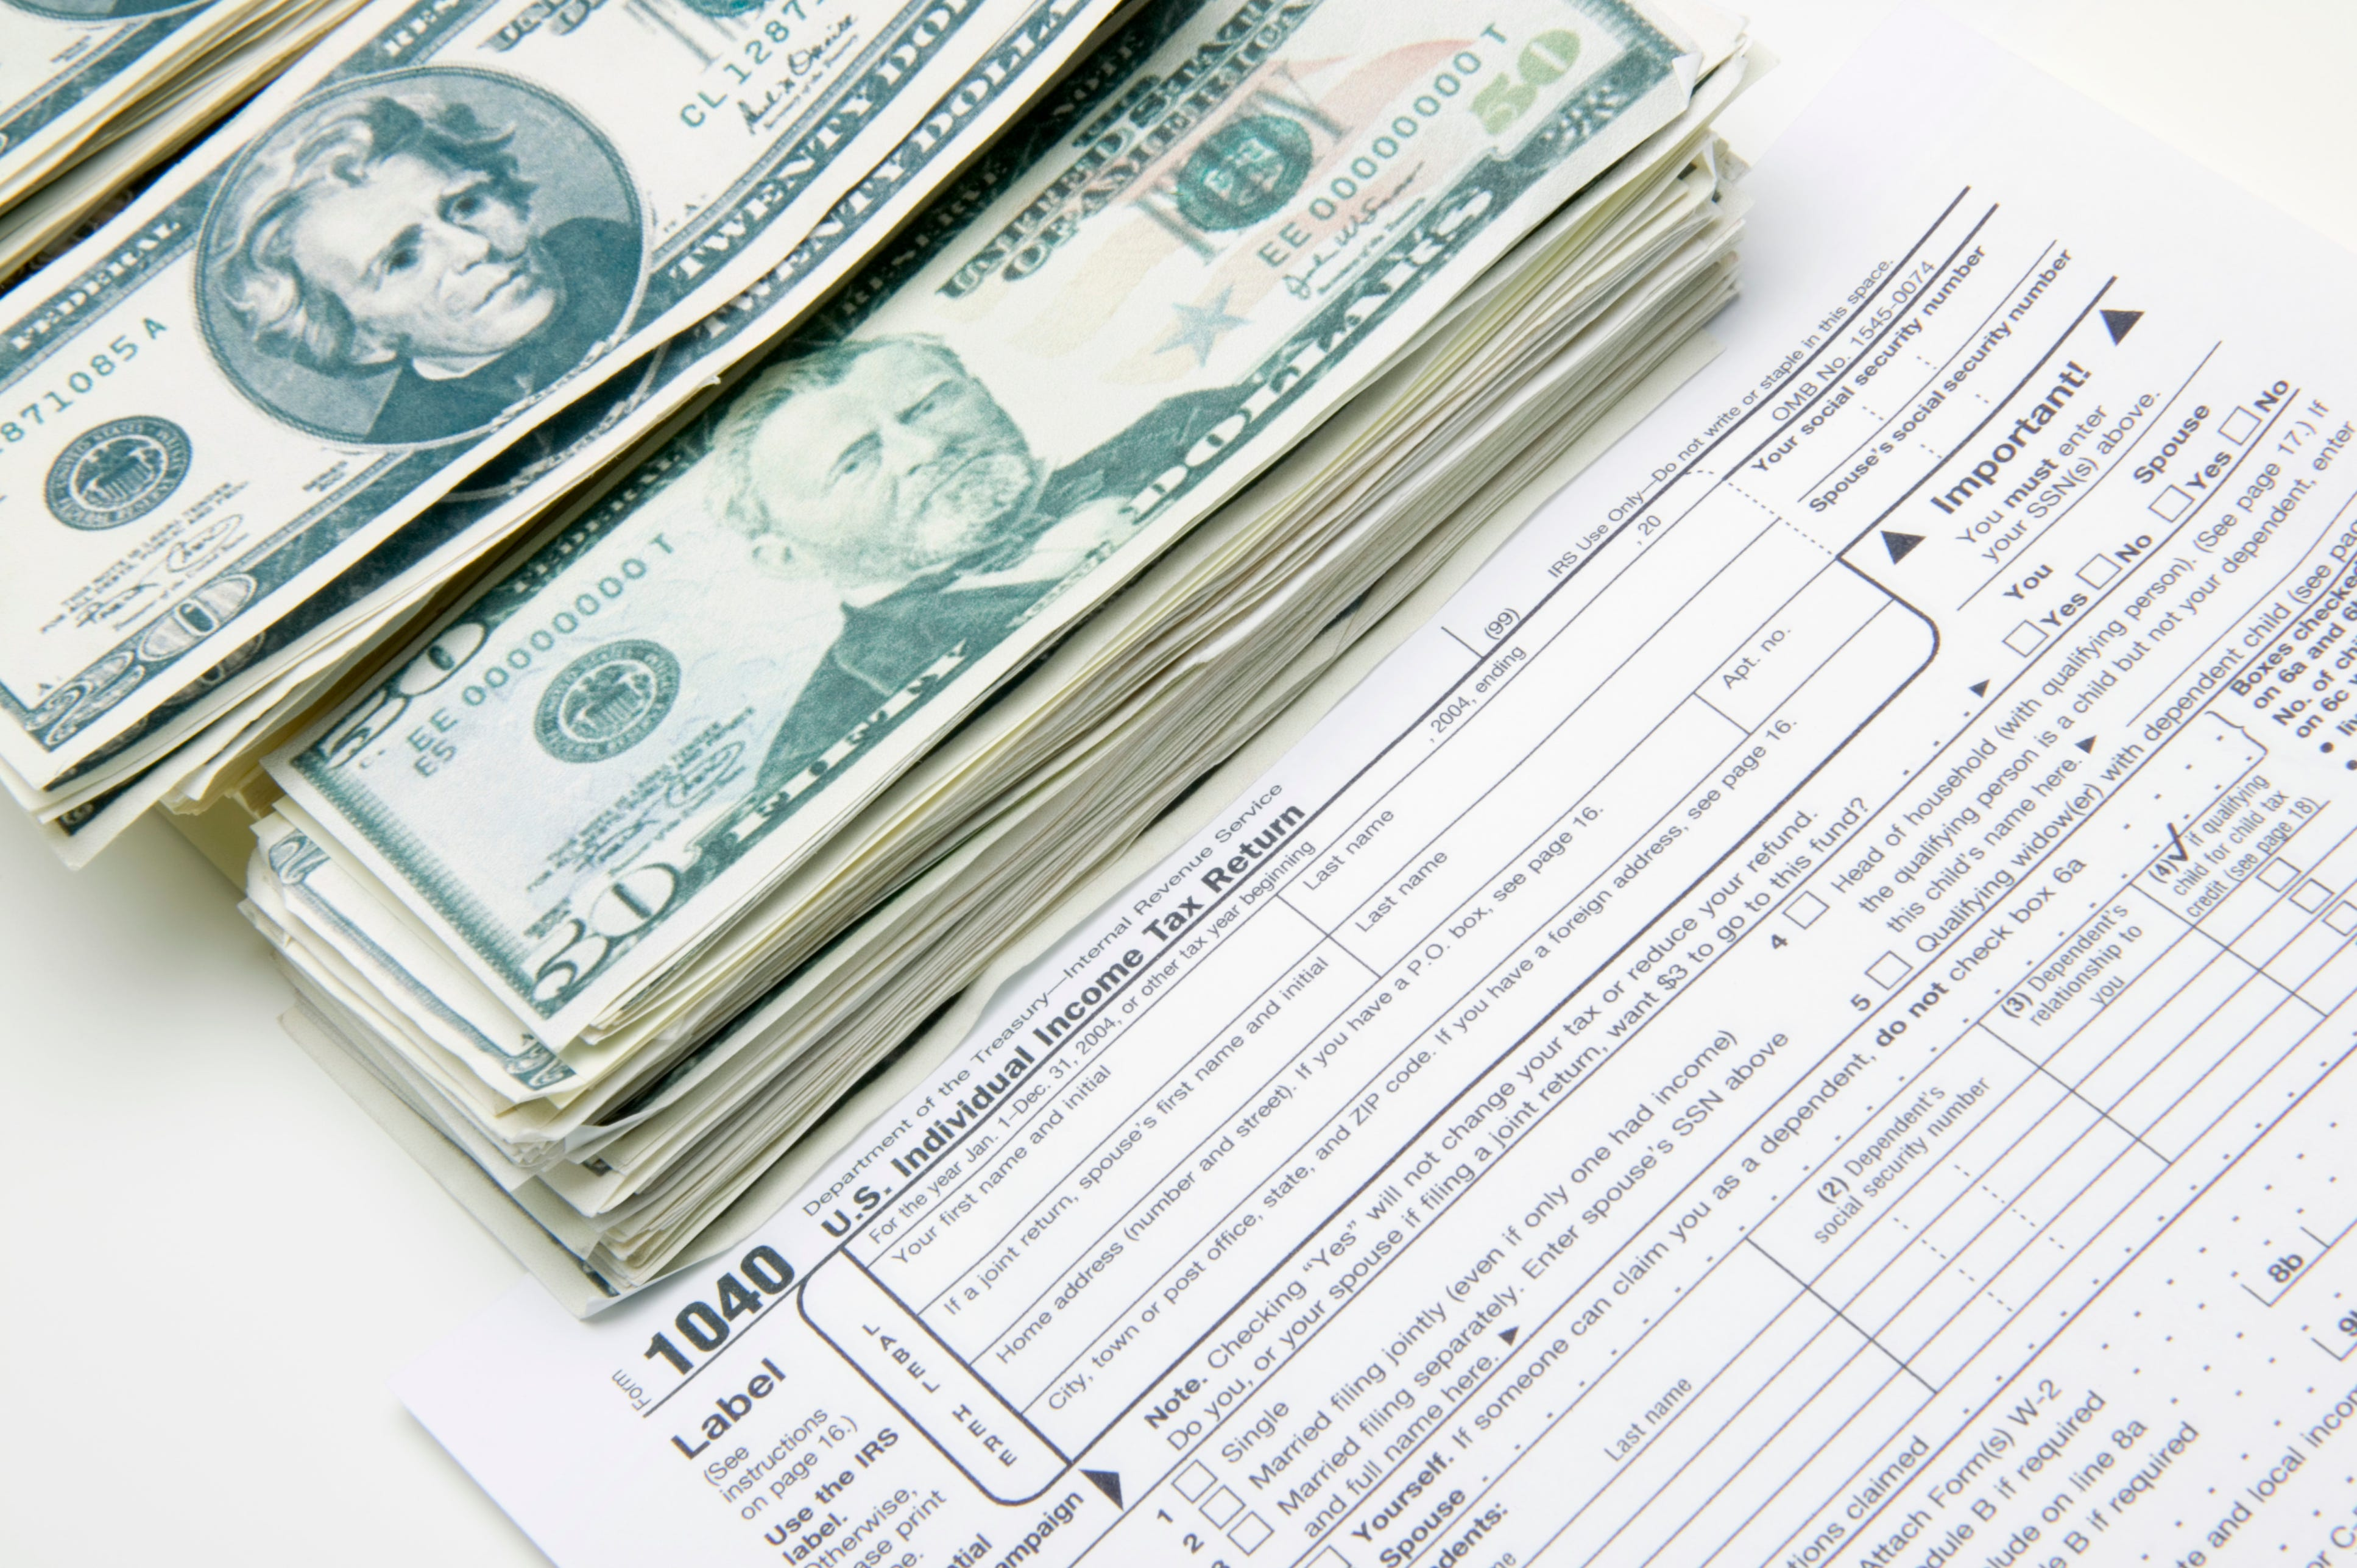 Top 10 tax credits to claim on your 2015 return